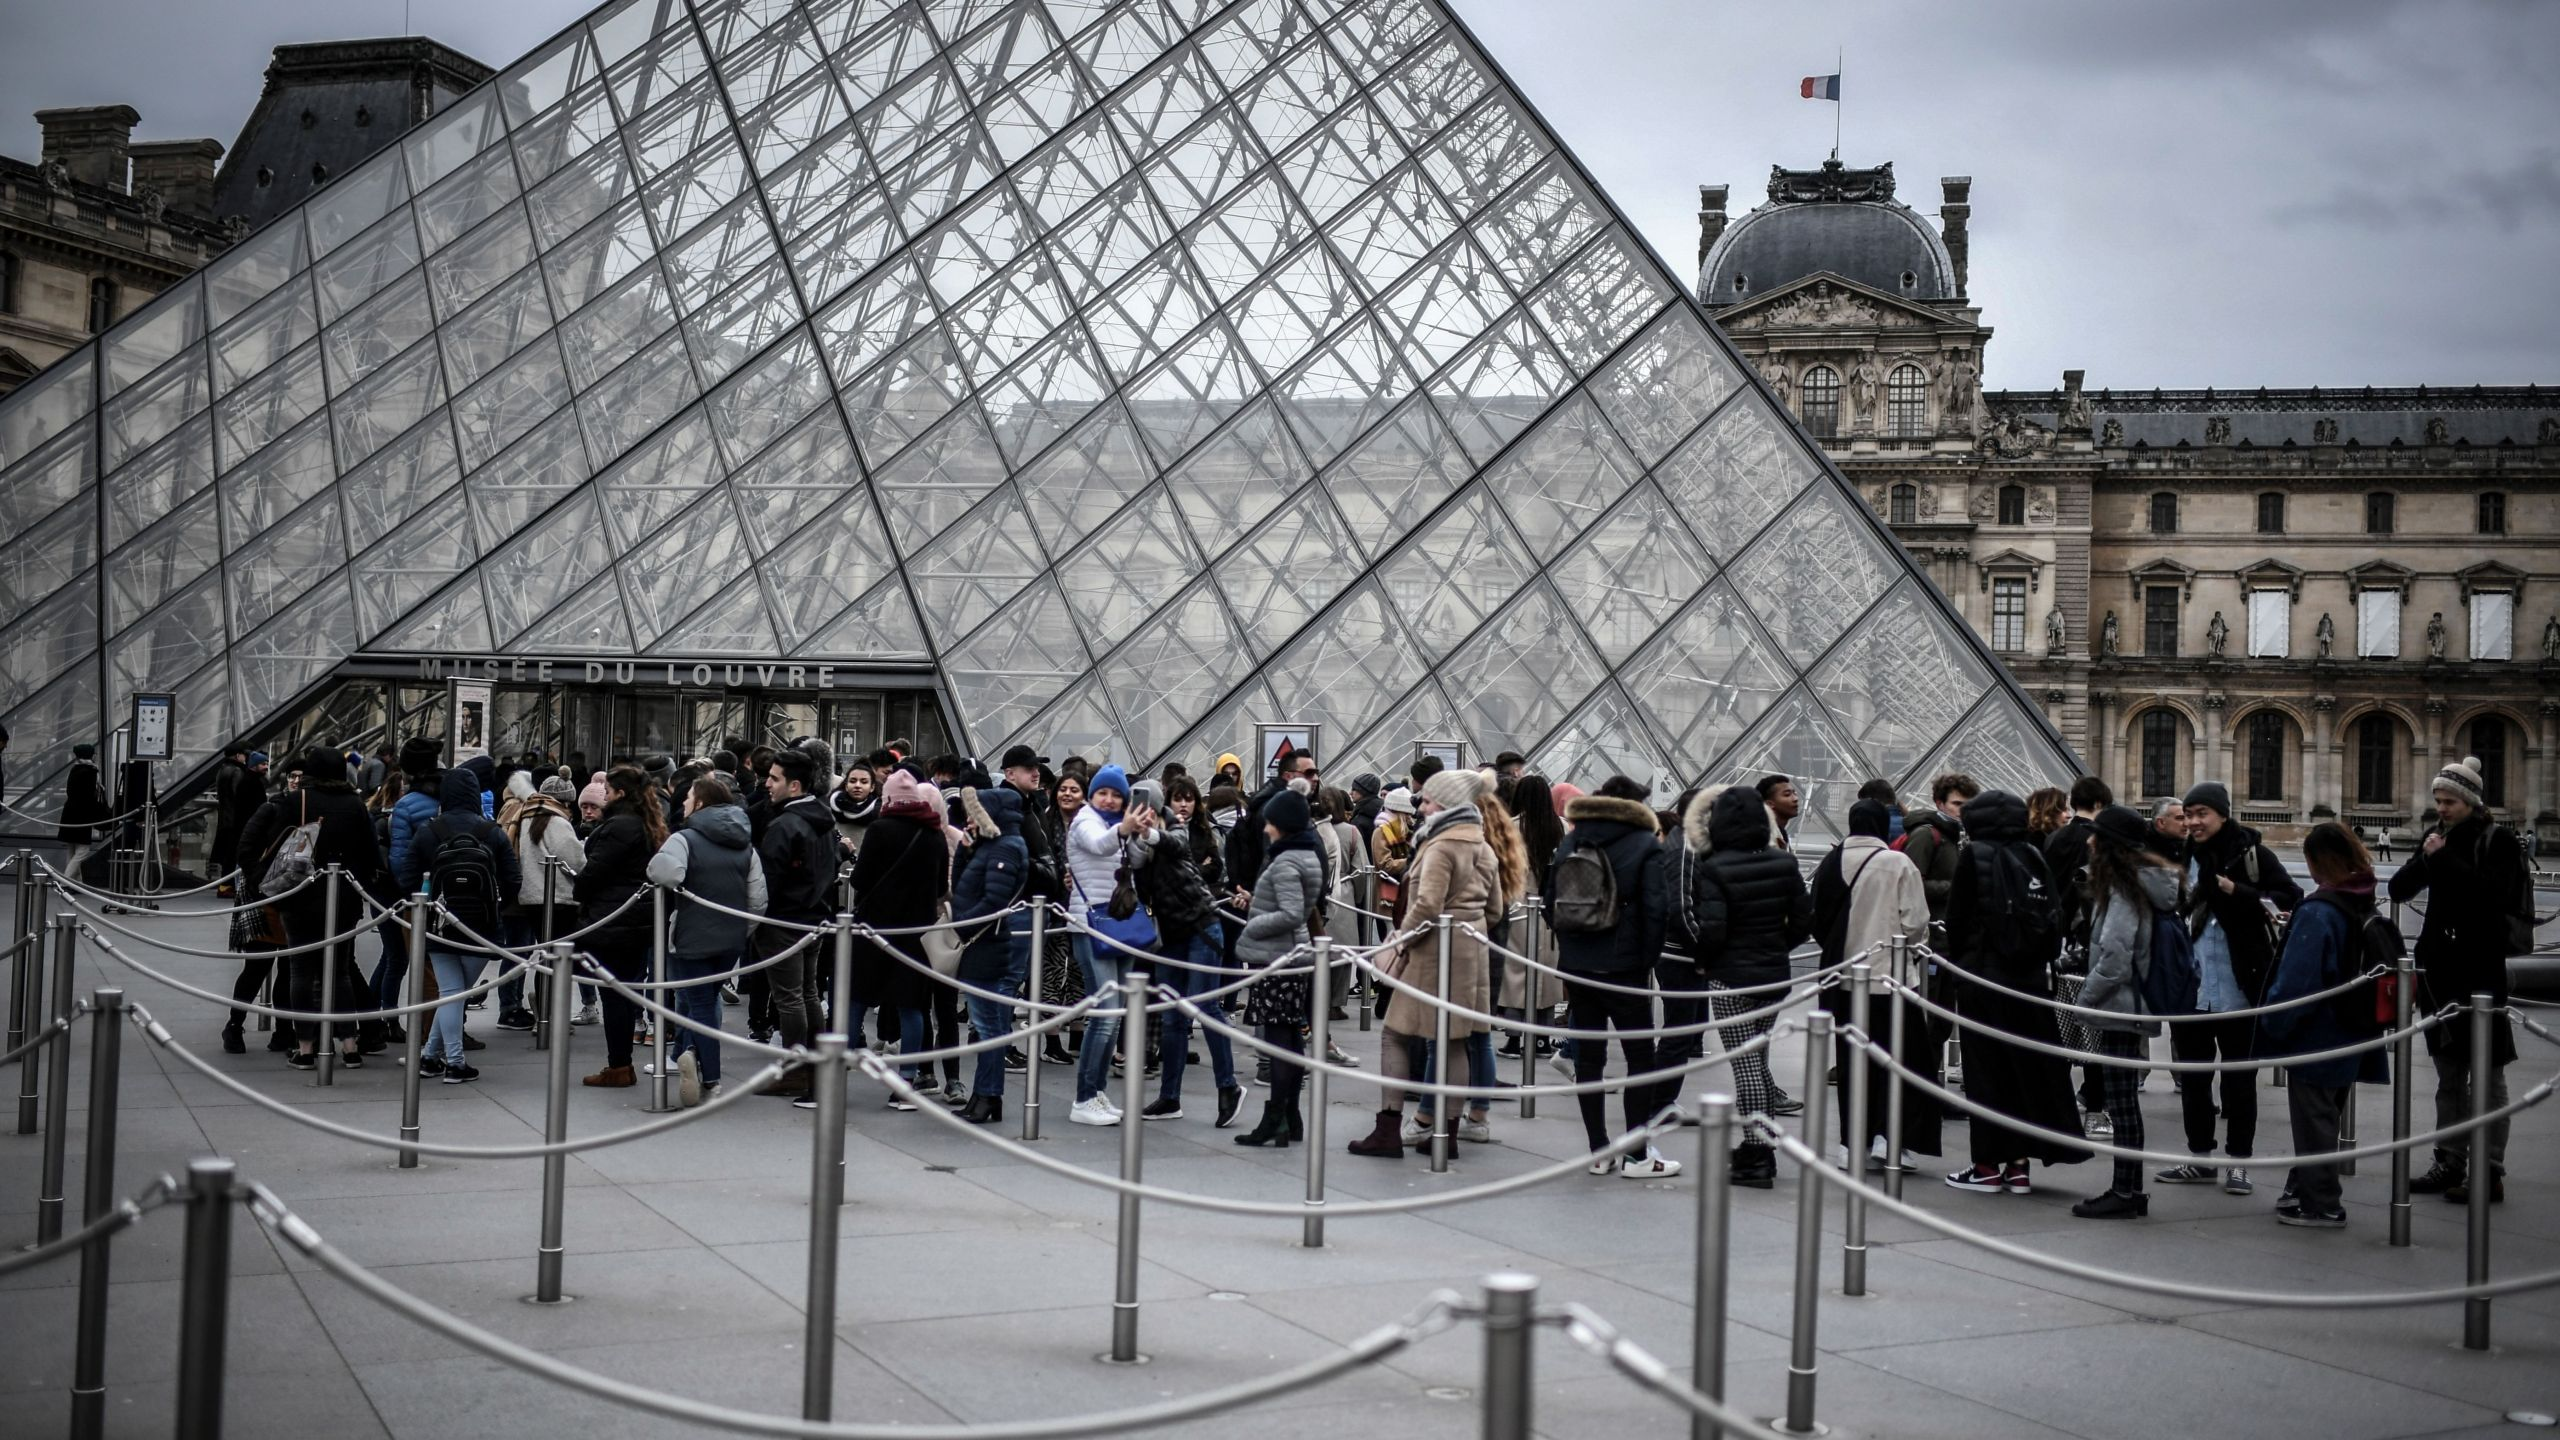 Coronavirus spreads to over 60 countries; France closes the Louvre ...